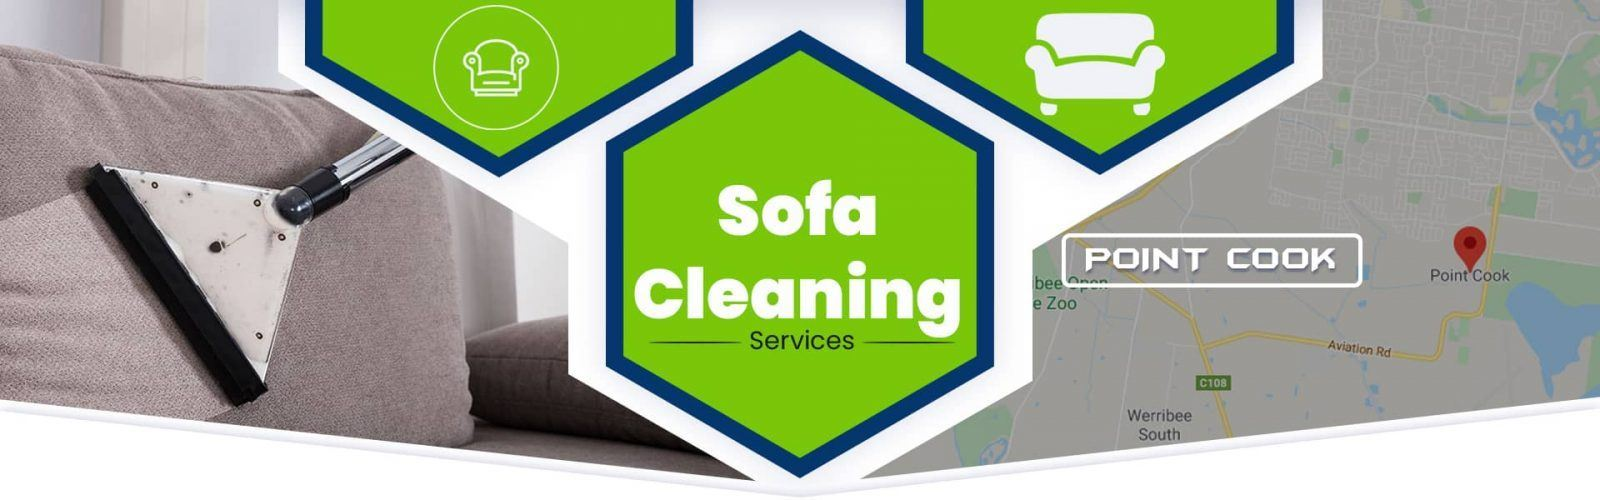 Sofa Cleaning Point Cook